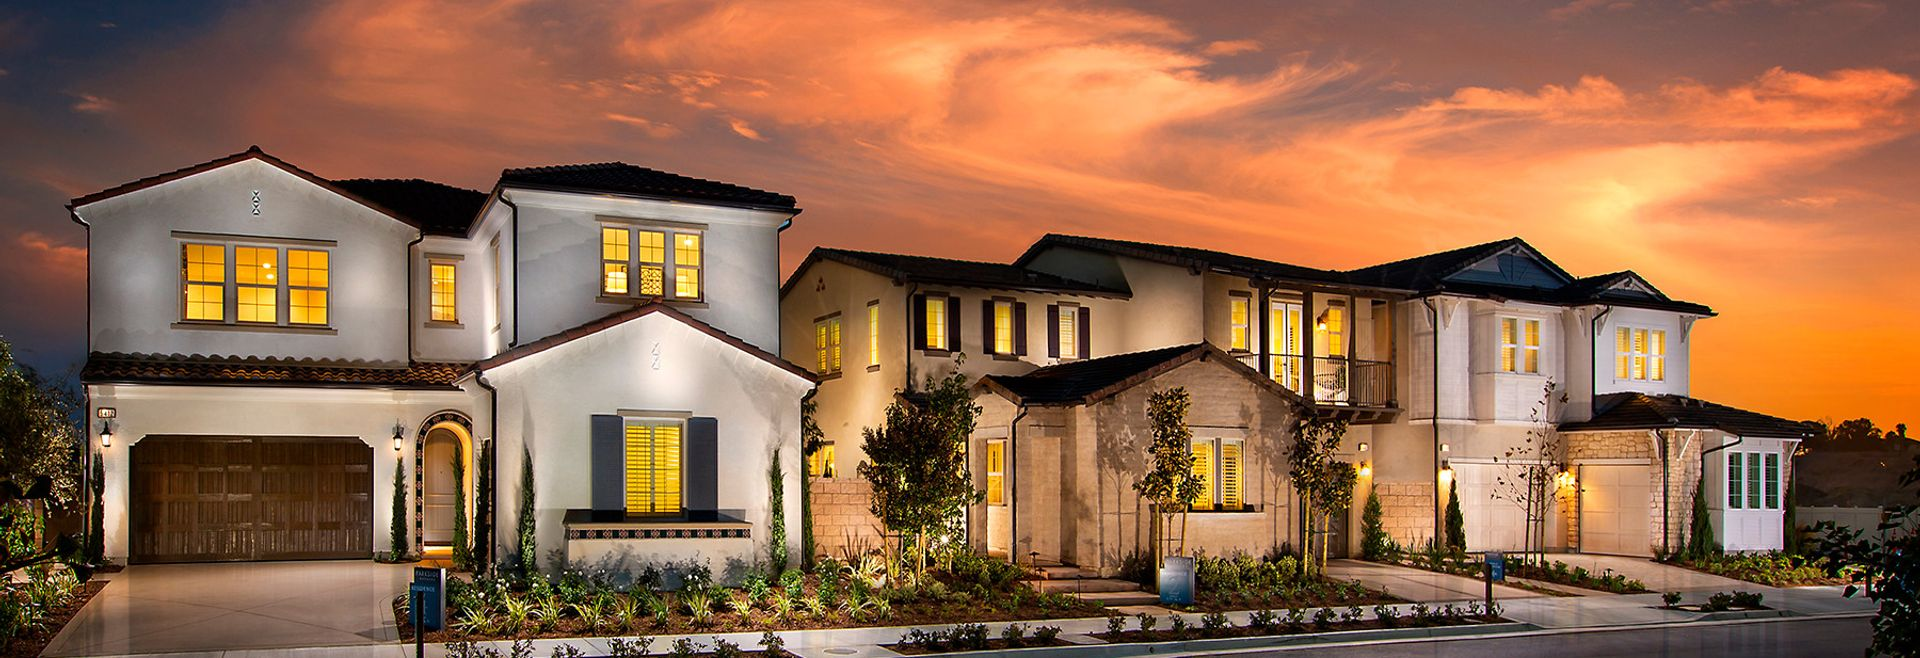 Parkside Estates by Shea Homes in Huntington Beach, CA